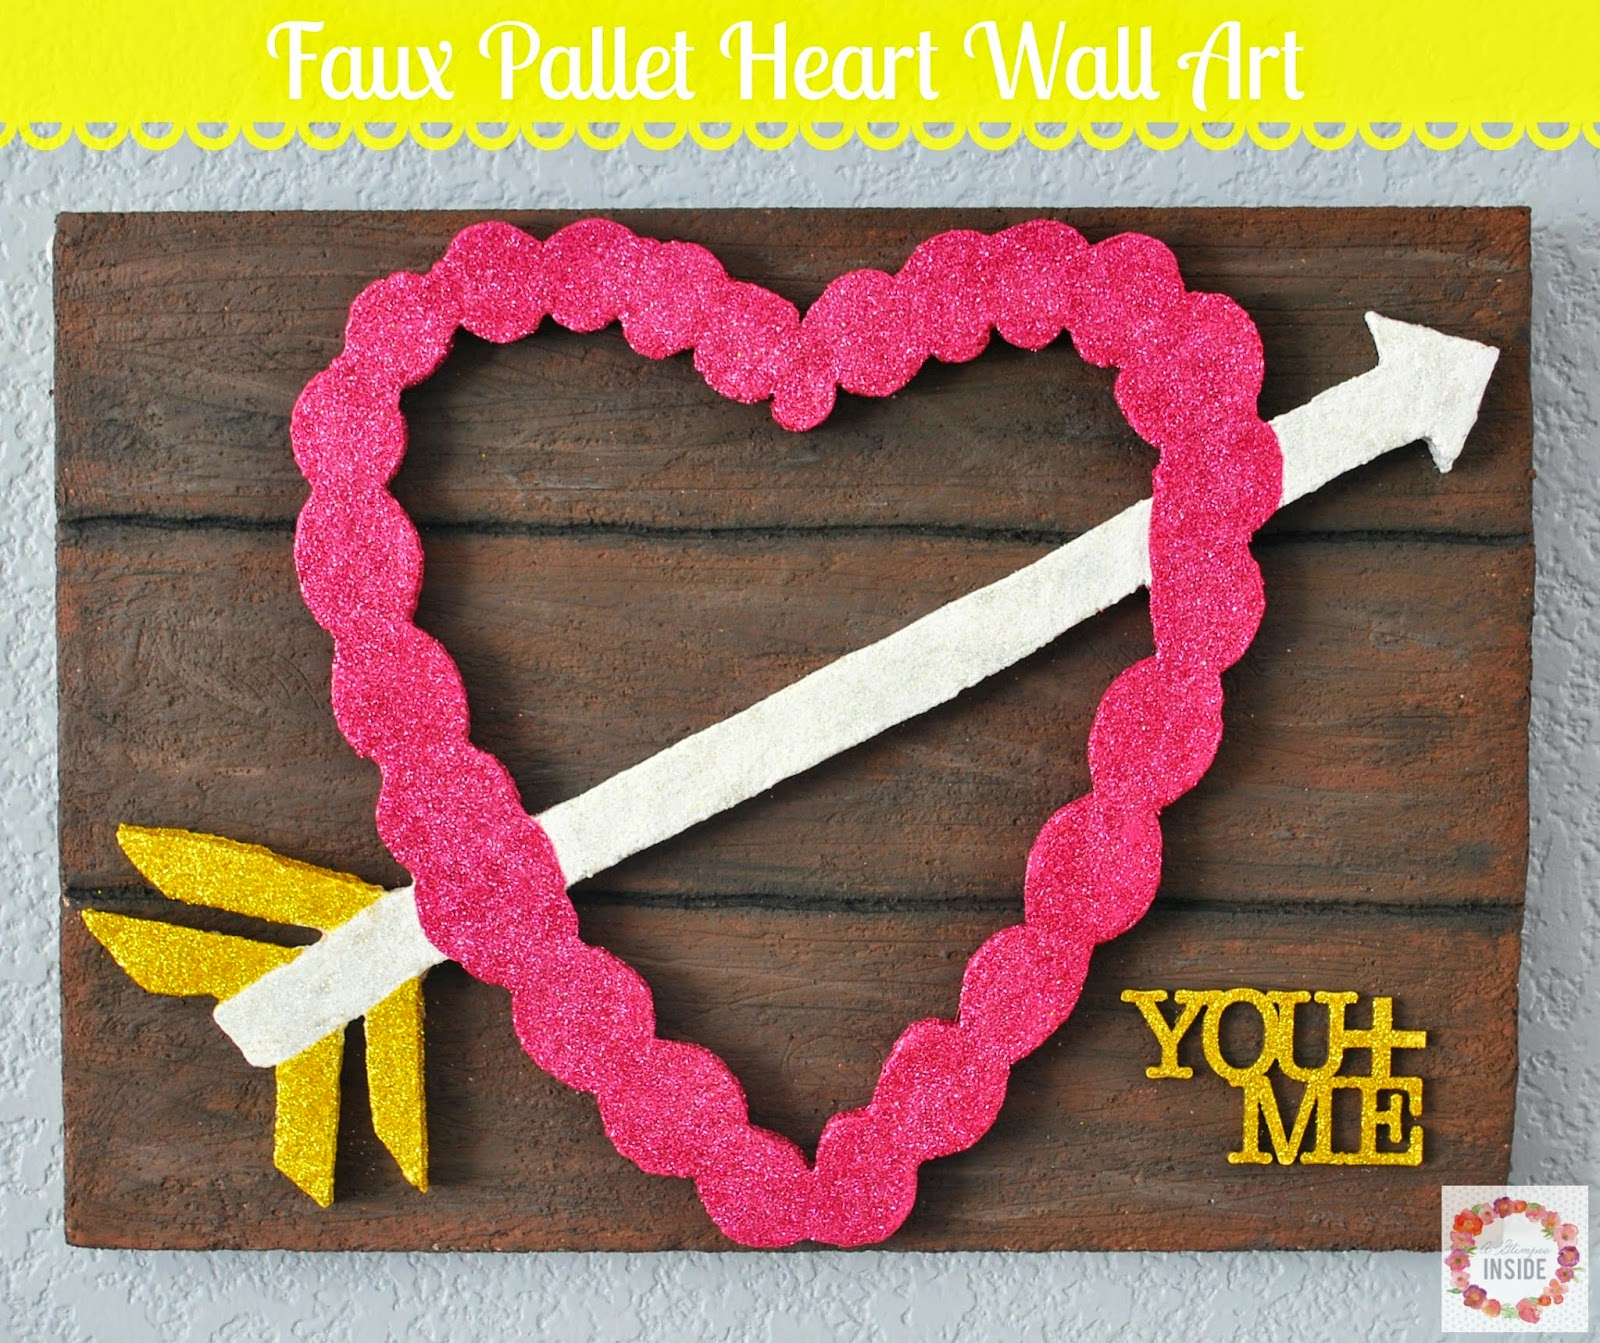 Faux Pallet Heart Wall Art A Glimpse Inside